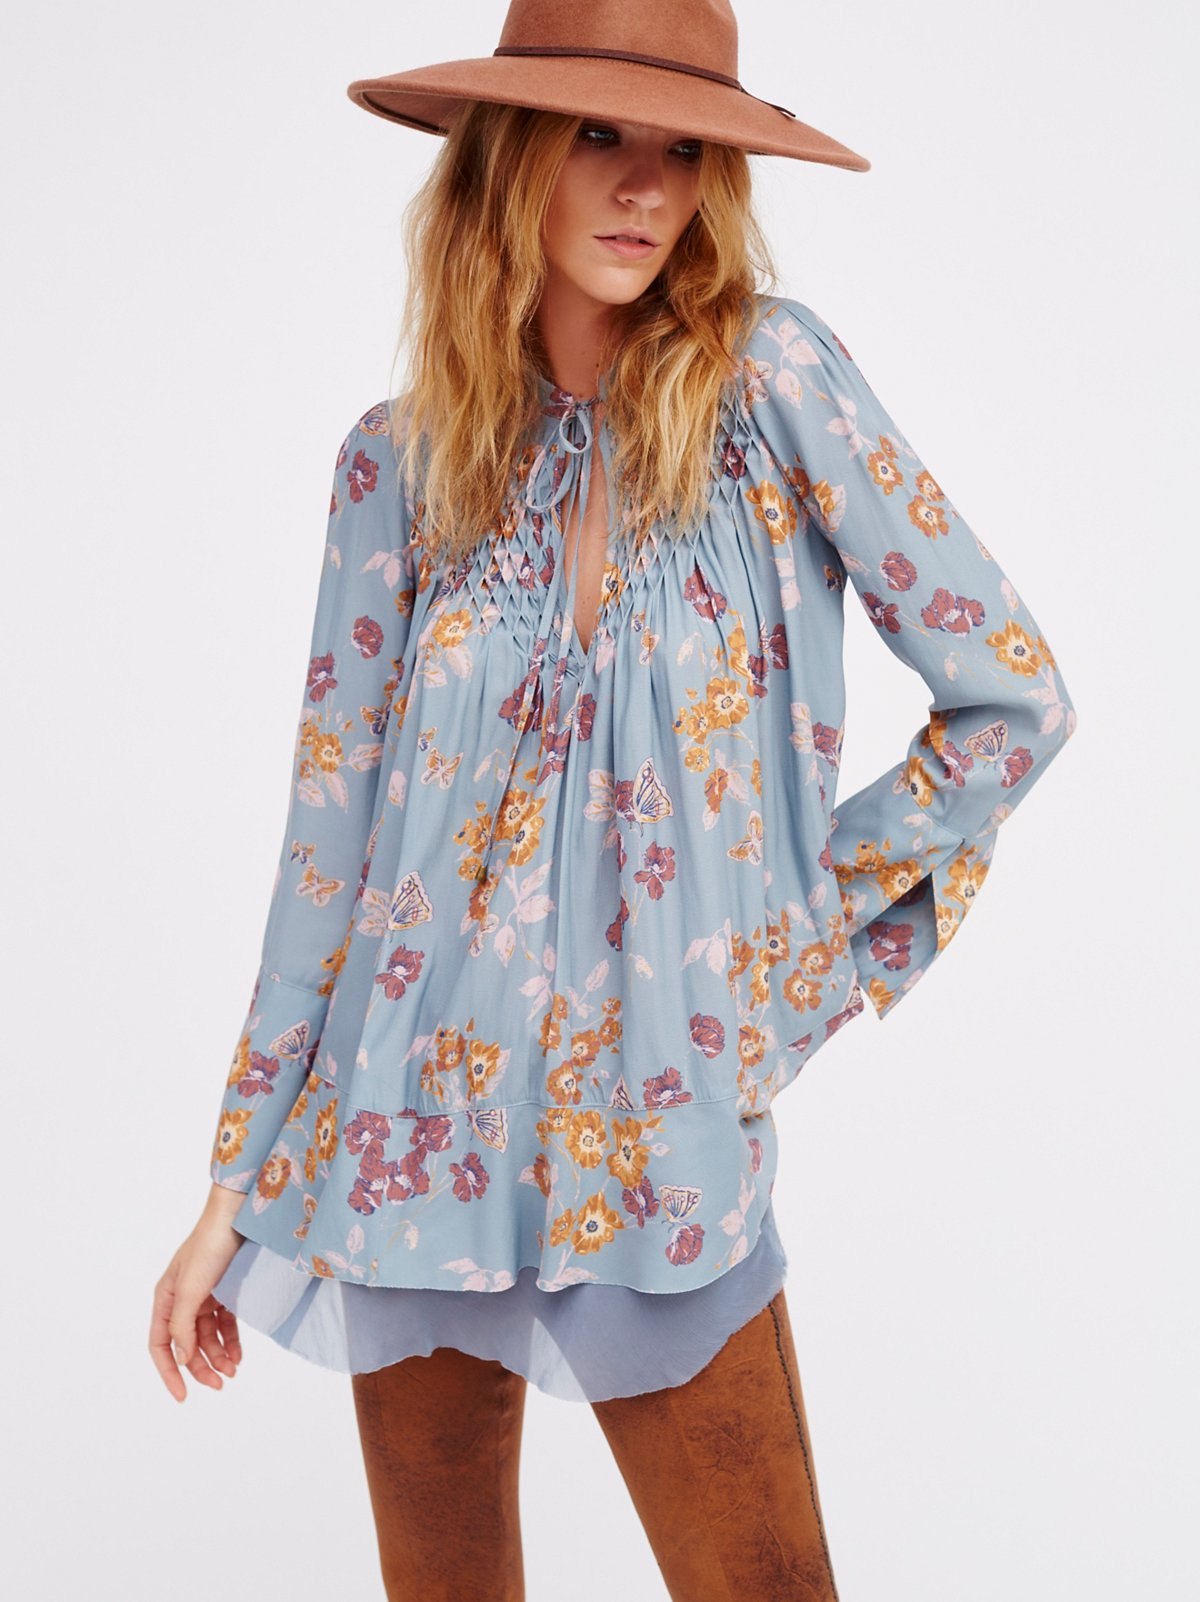 So Fine Printed Smocked Top